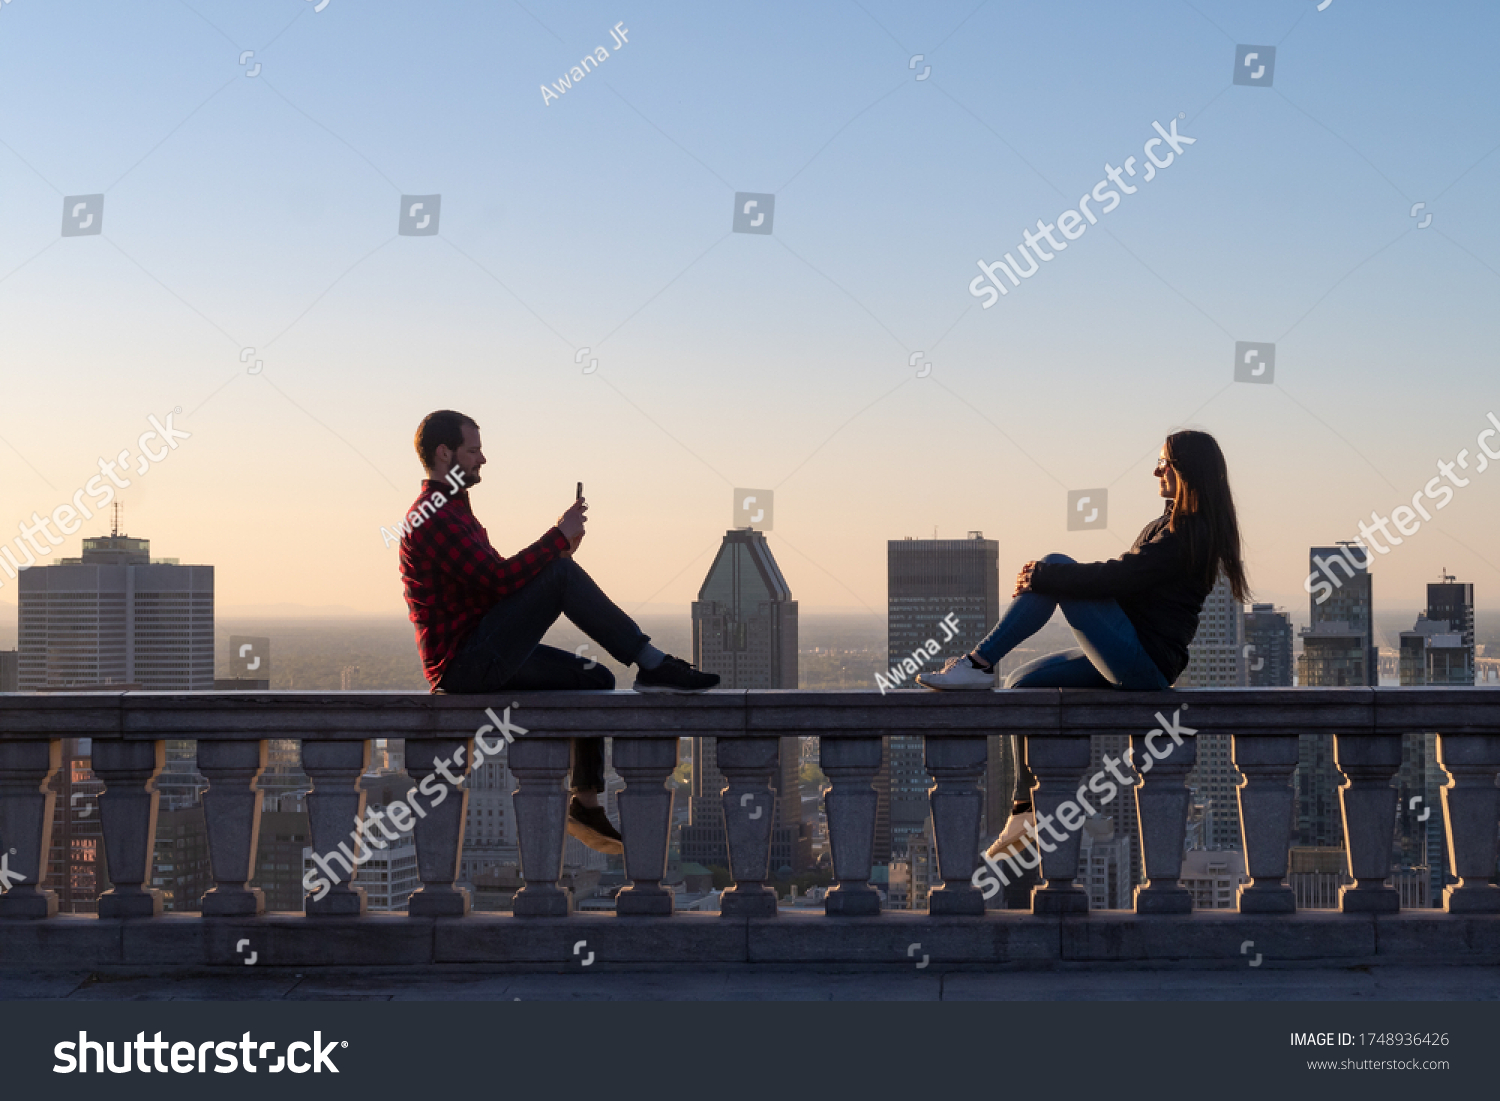 stock-photo-montreal-canada-may-couple-s